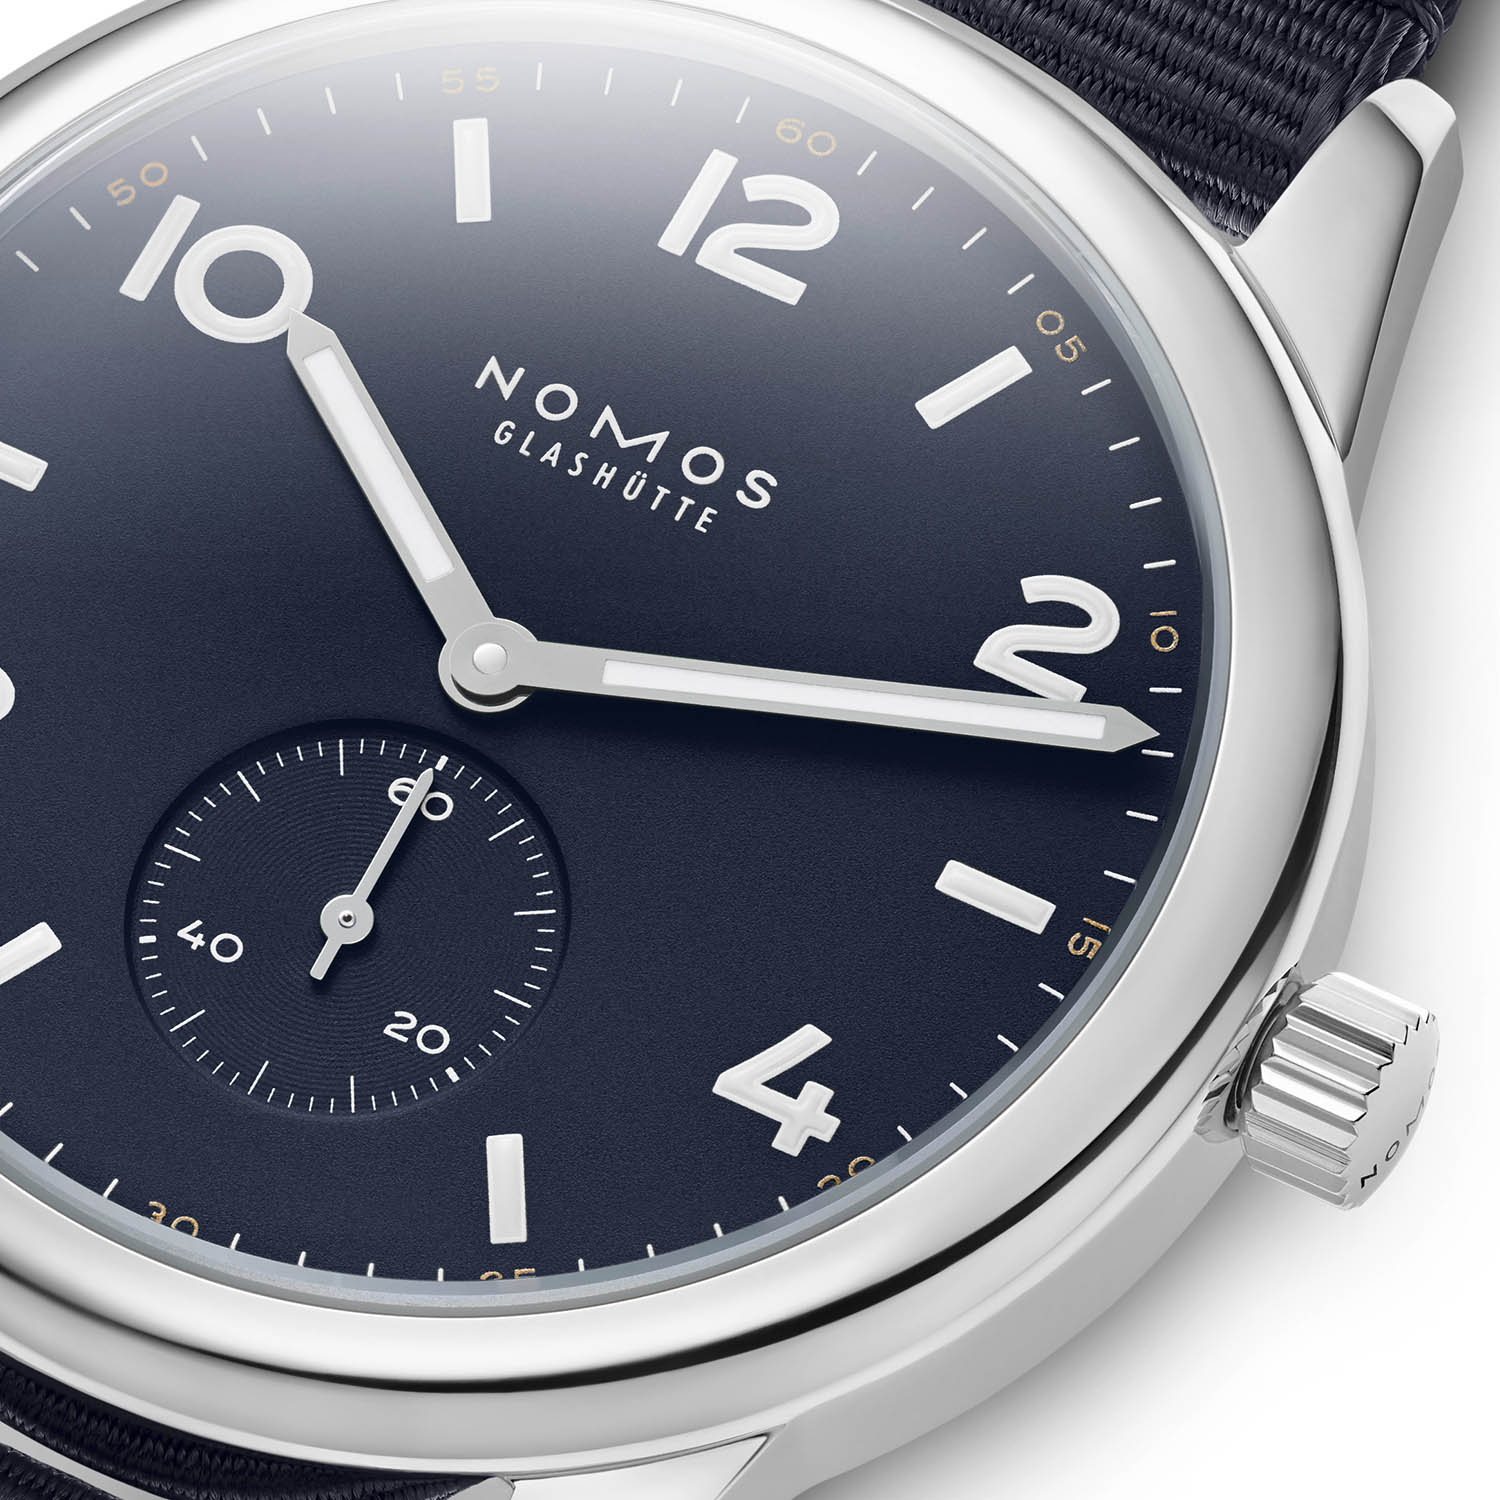 Nomos Club Automatic 175th anniversary limited editions - 1